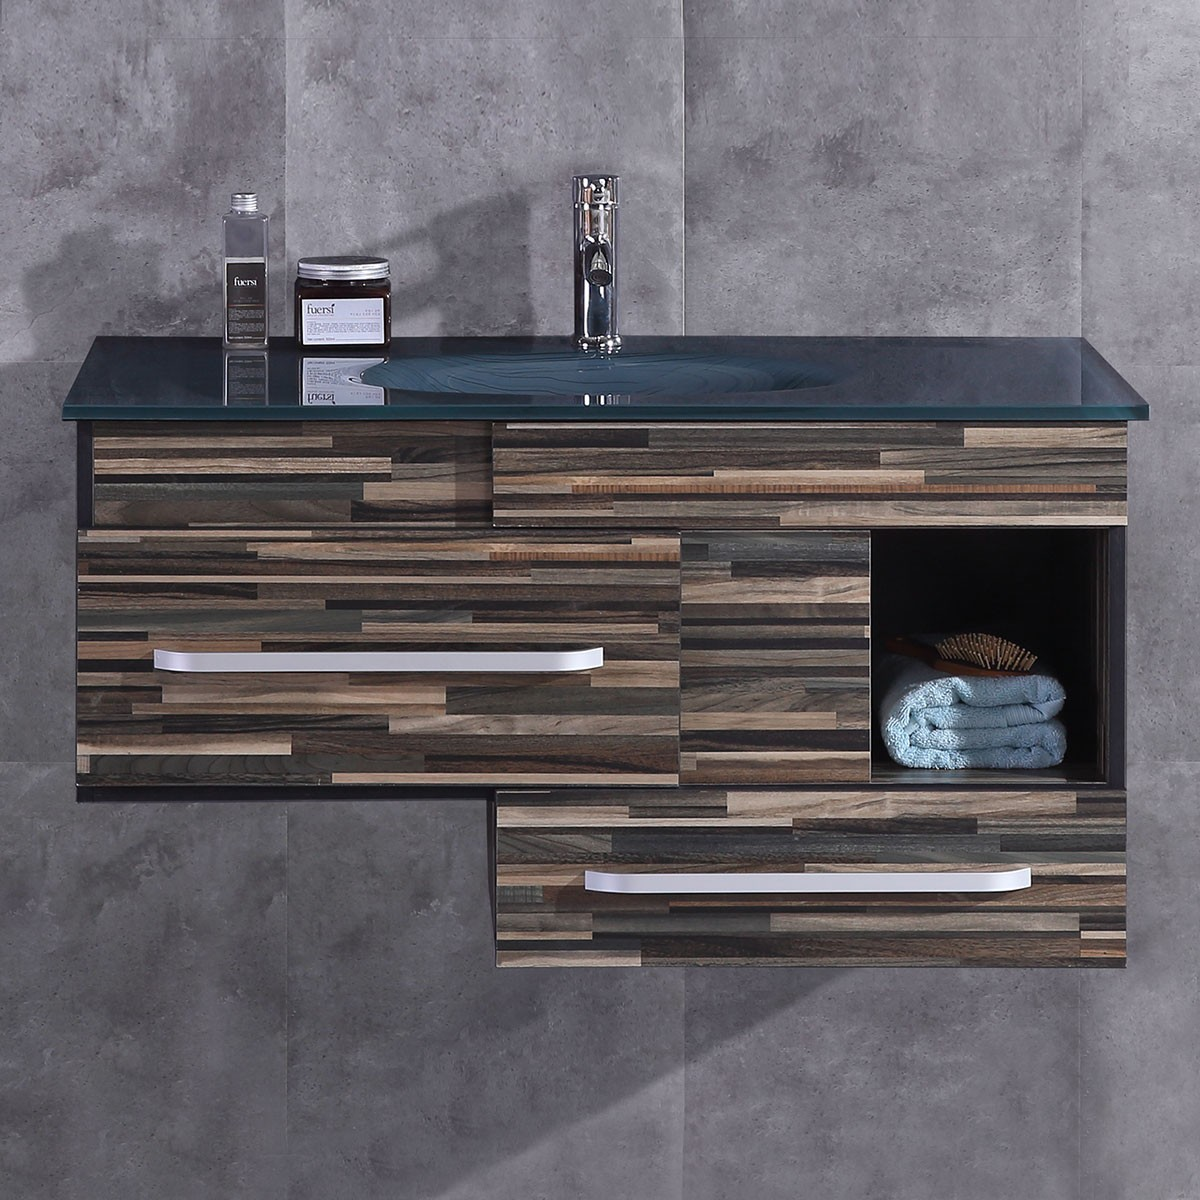 40 In. Plywood Vanity with Basin (DK-TH9032-V)